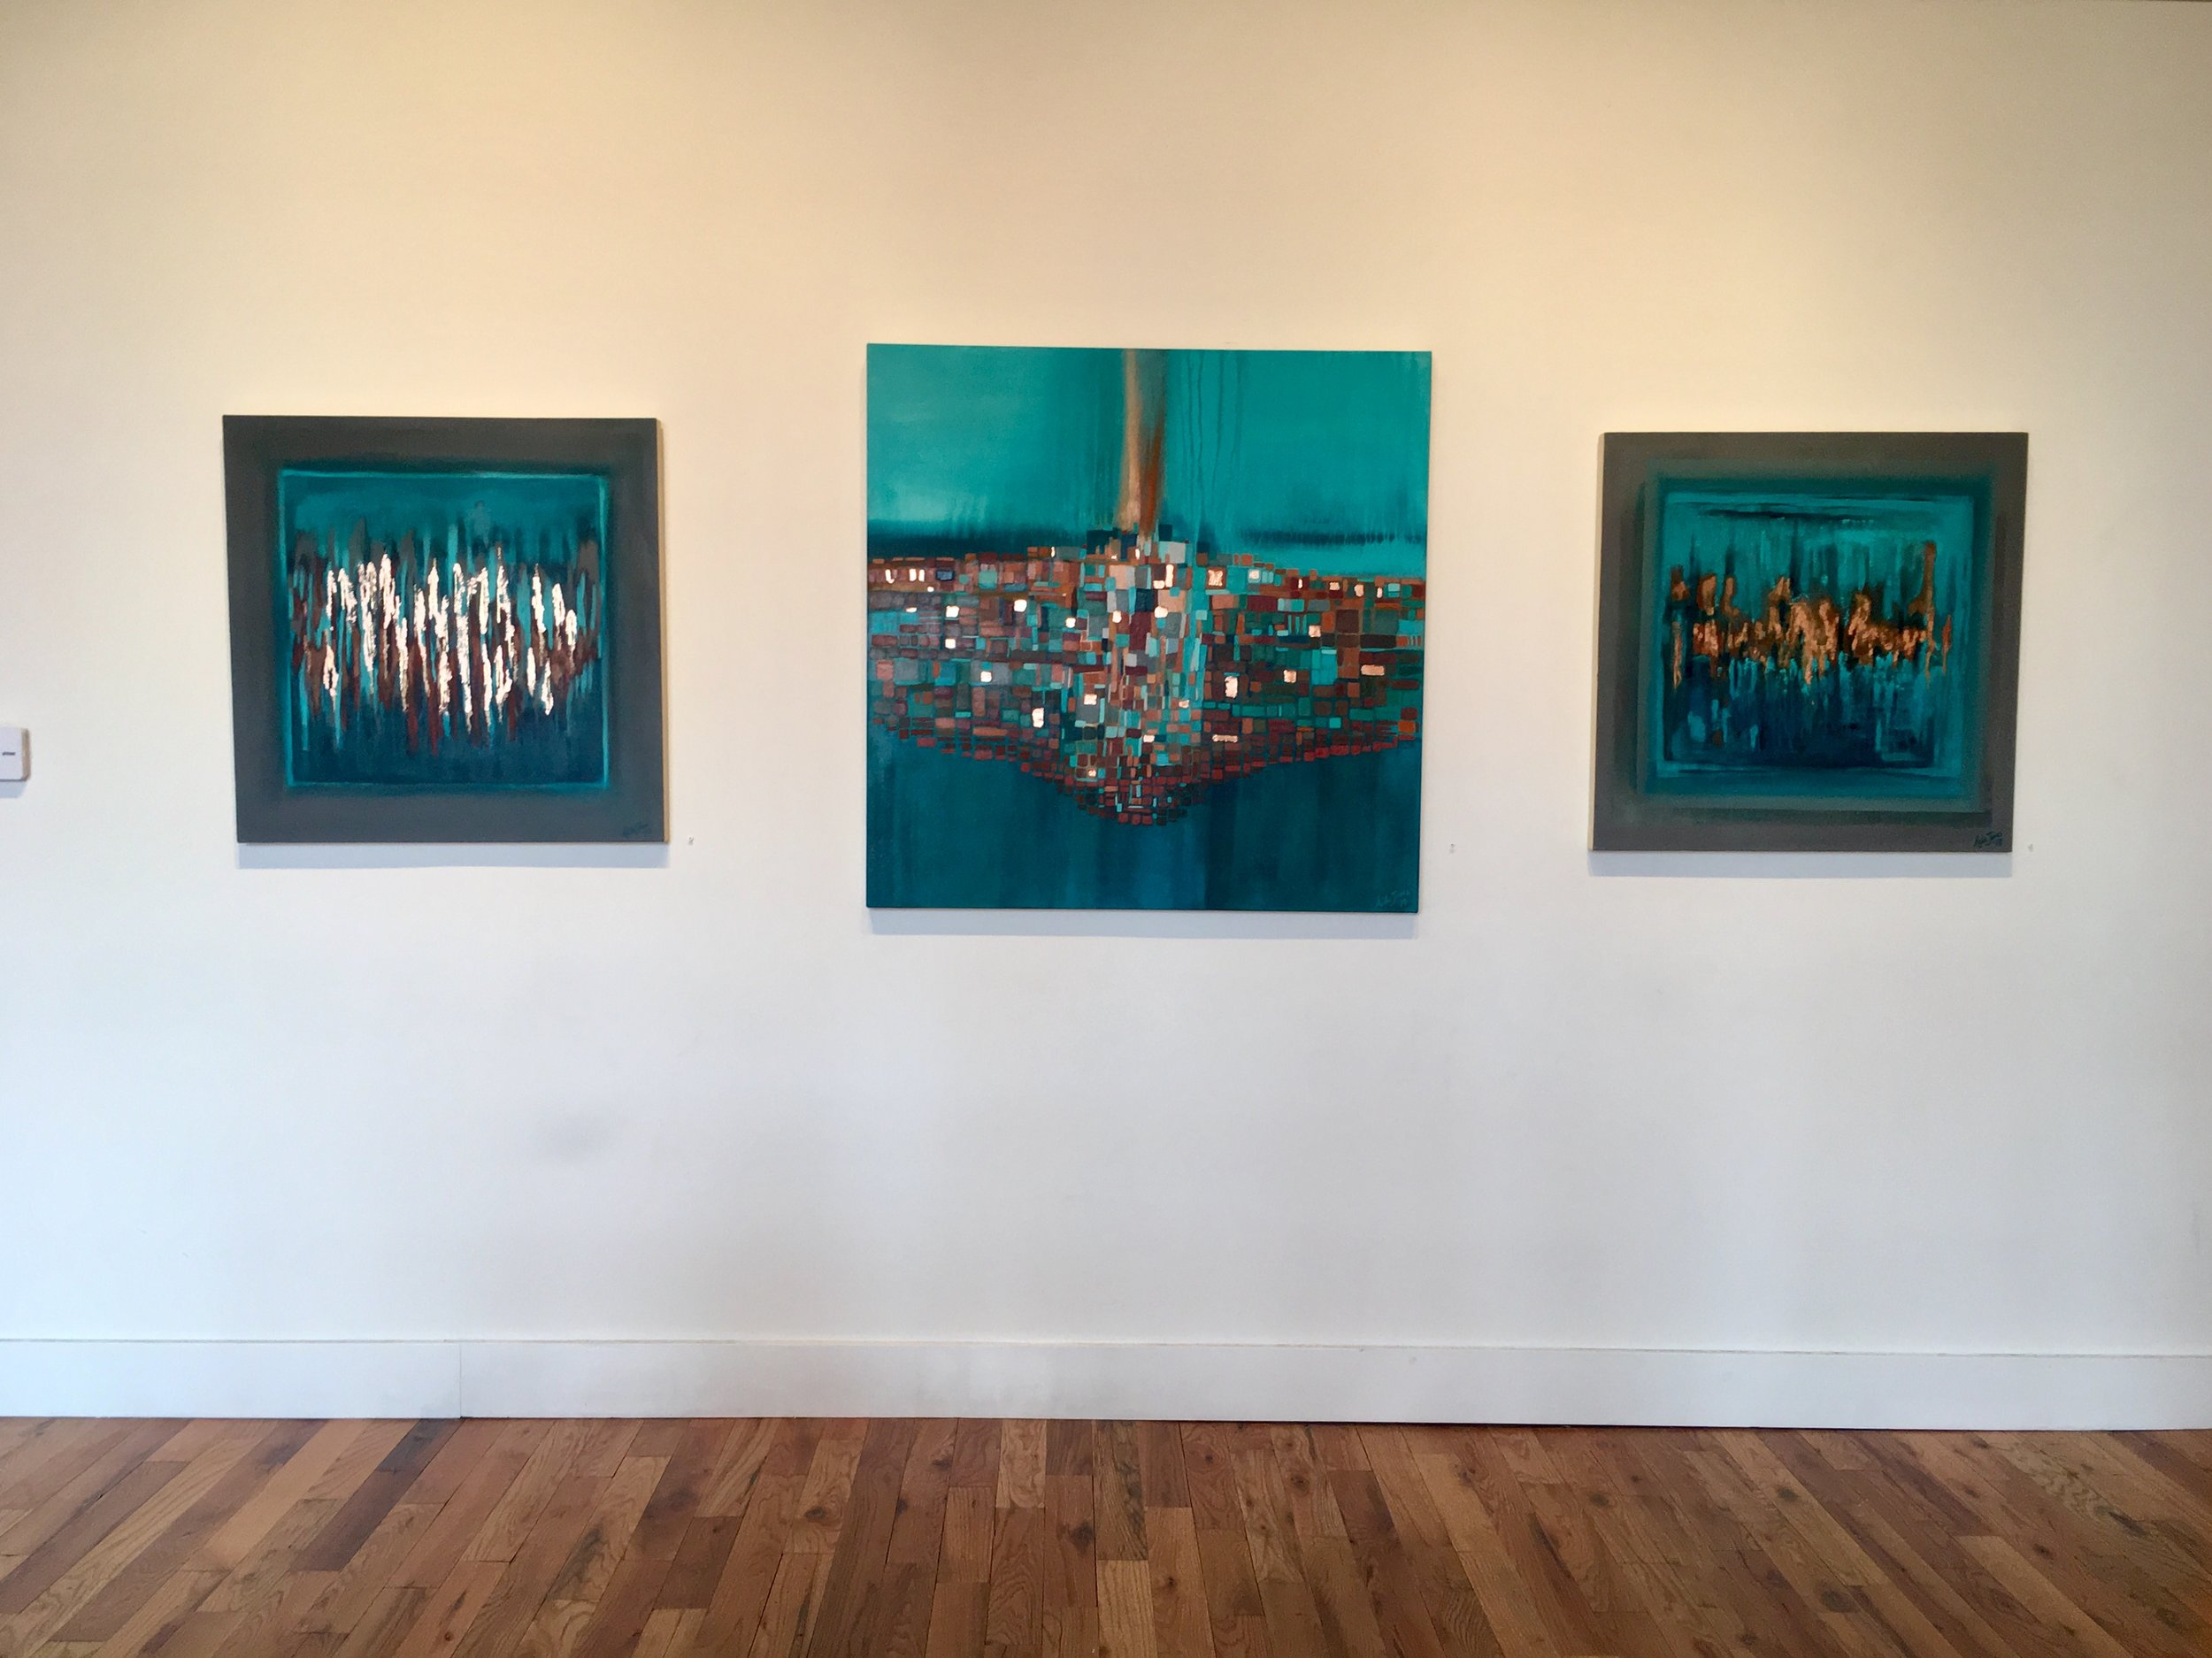 Exhibition at FireHouse Gallery